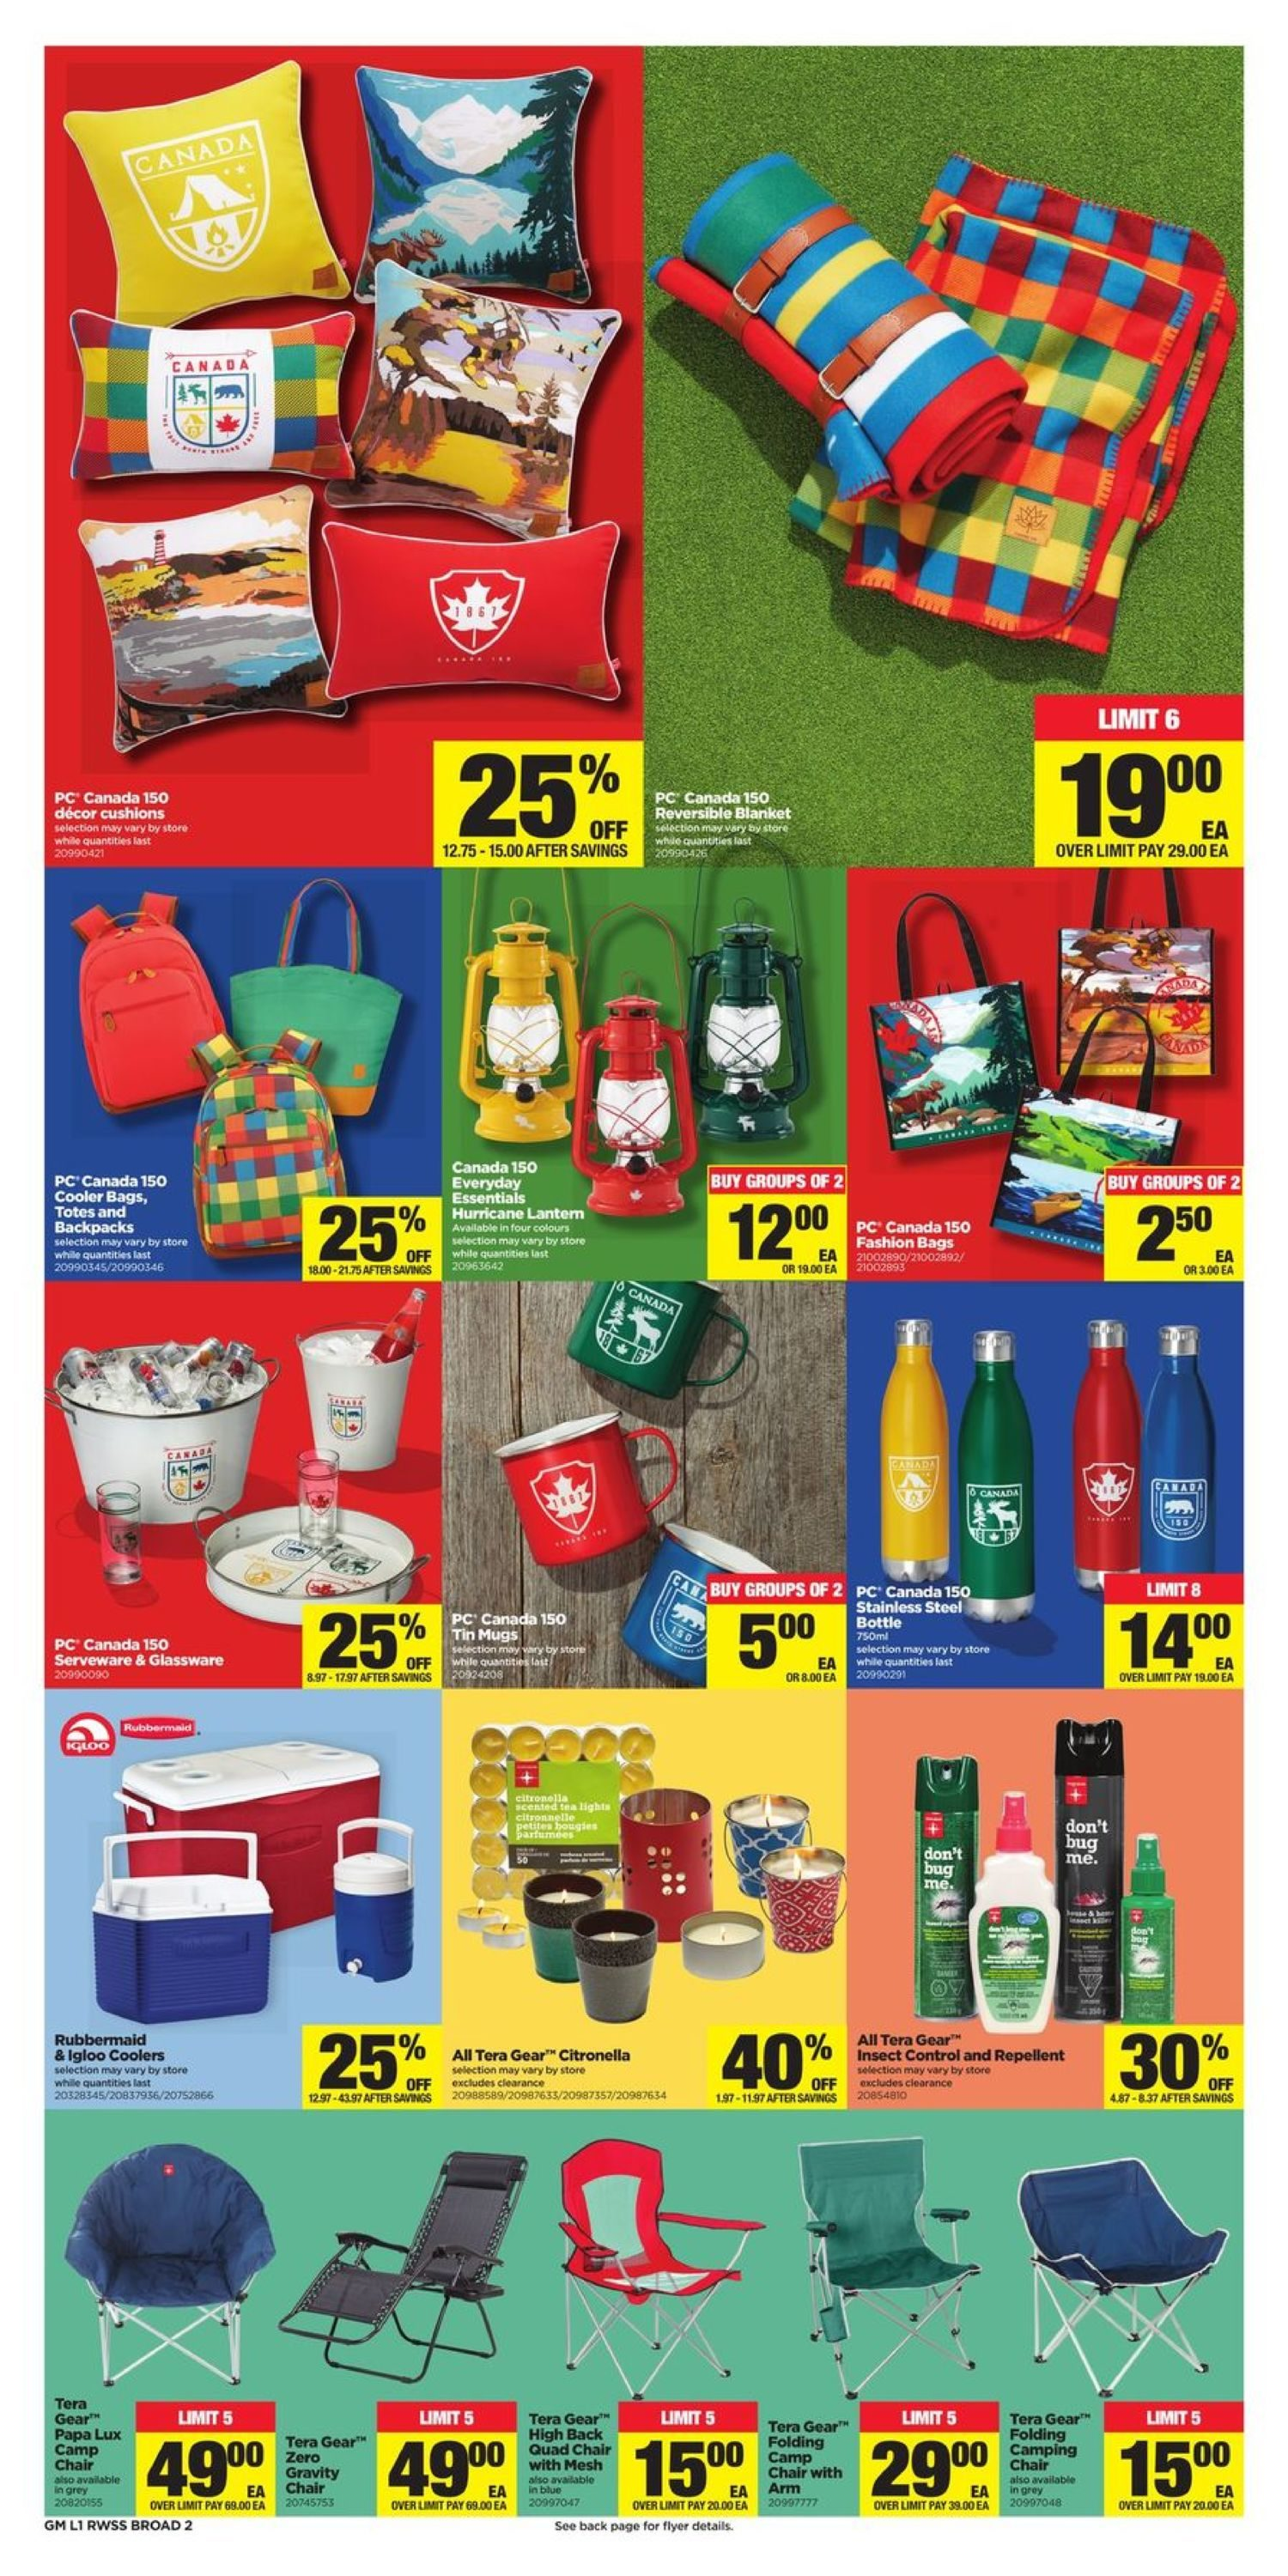 Real Canadian Superstore Weekly Flyer - Weekly - Jun 2 – 8